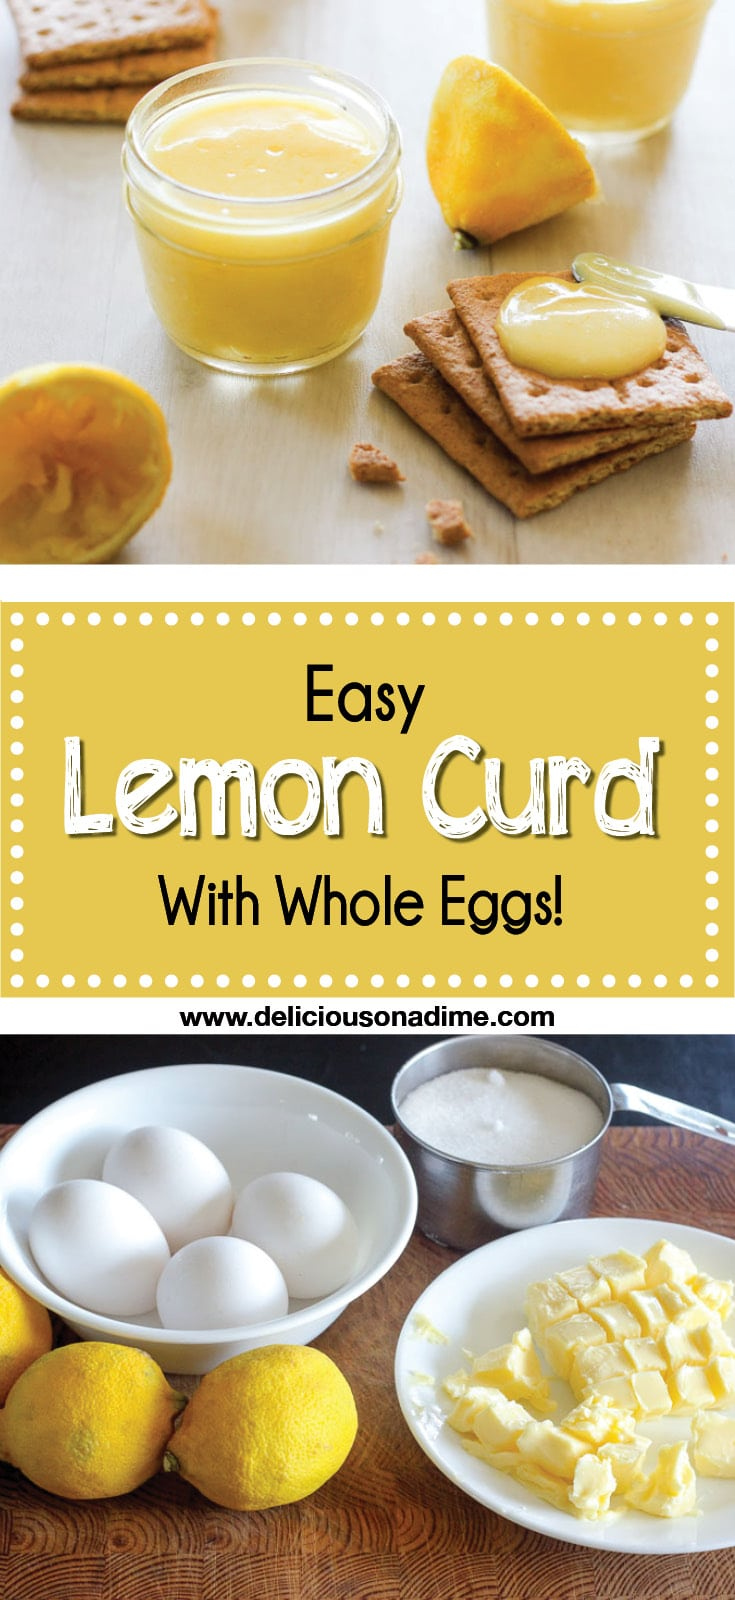 This Easy Lemon Curd is creamy, dreamy, tart and sweet. It uses whole eggs (so no wasted egg whites!) and you can throw it together in around 20 minutes. Now that's my kind of breakfast/dessert/snack treat.